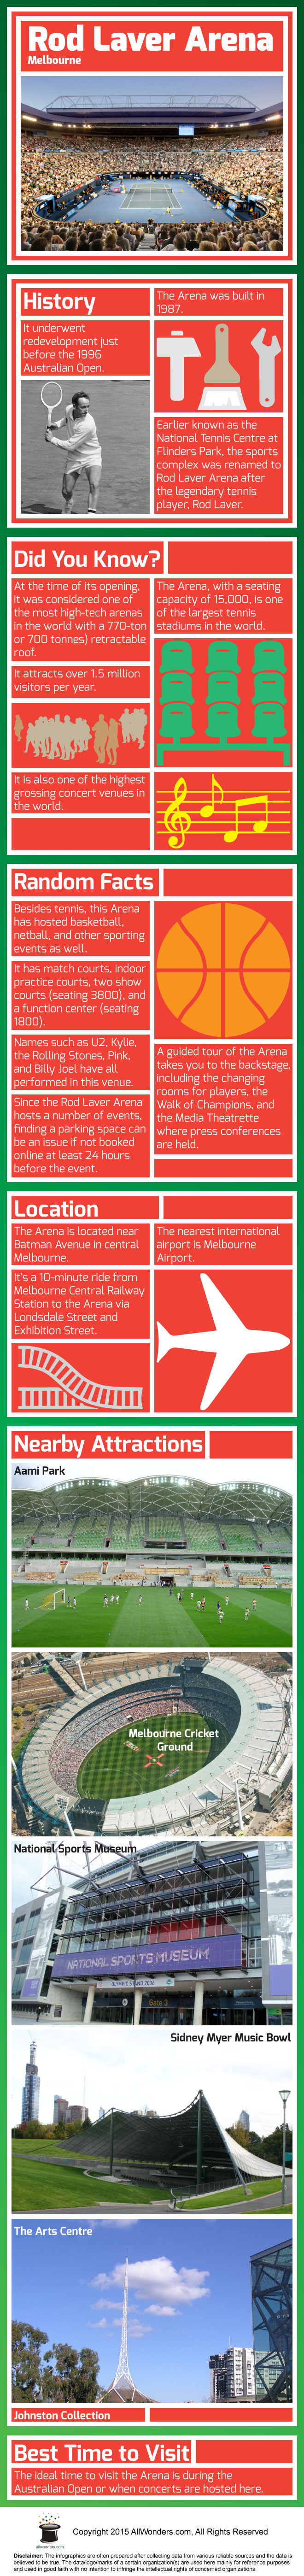 Rod Laver Arena Infographic